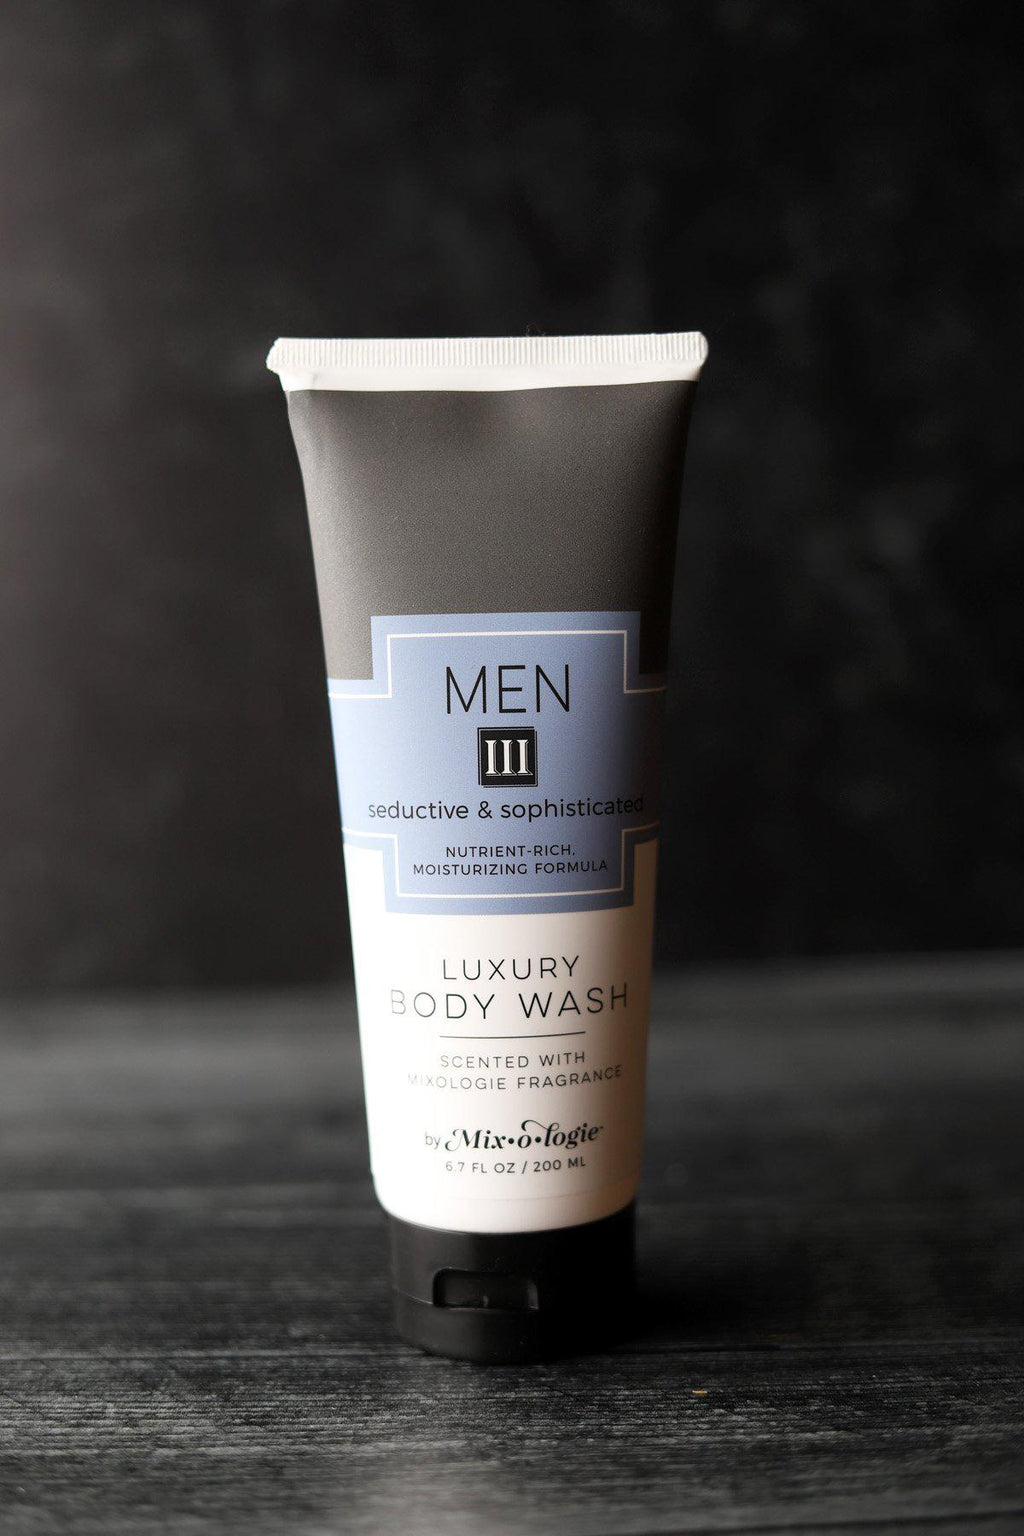 Mixologie: Men's Luxury Body Wash - Men's III